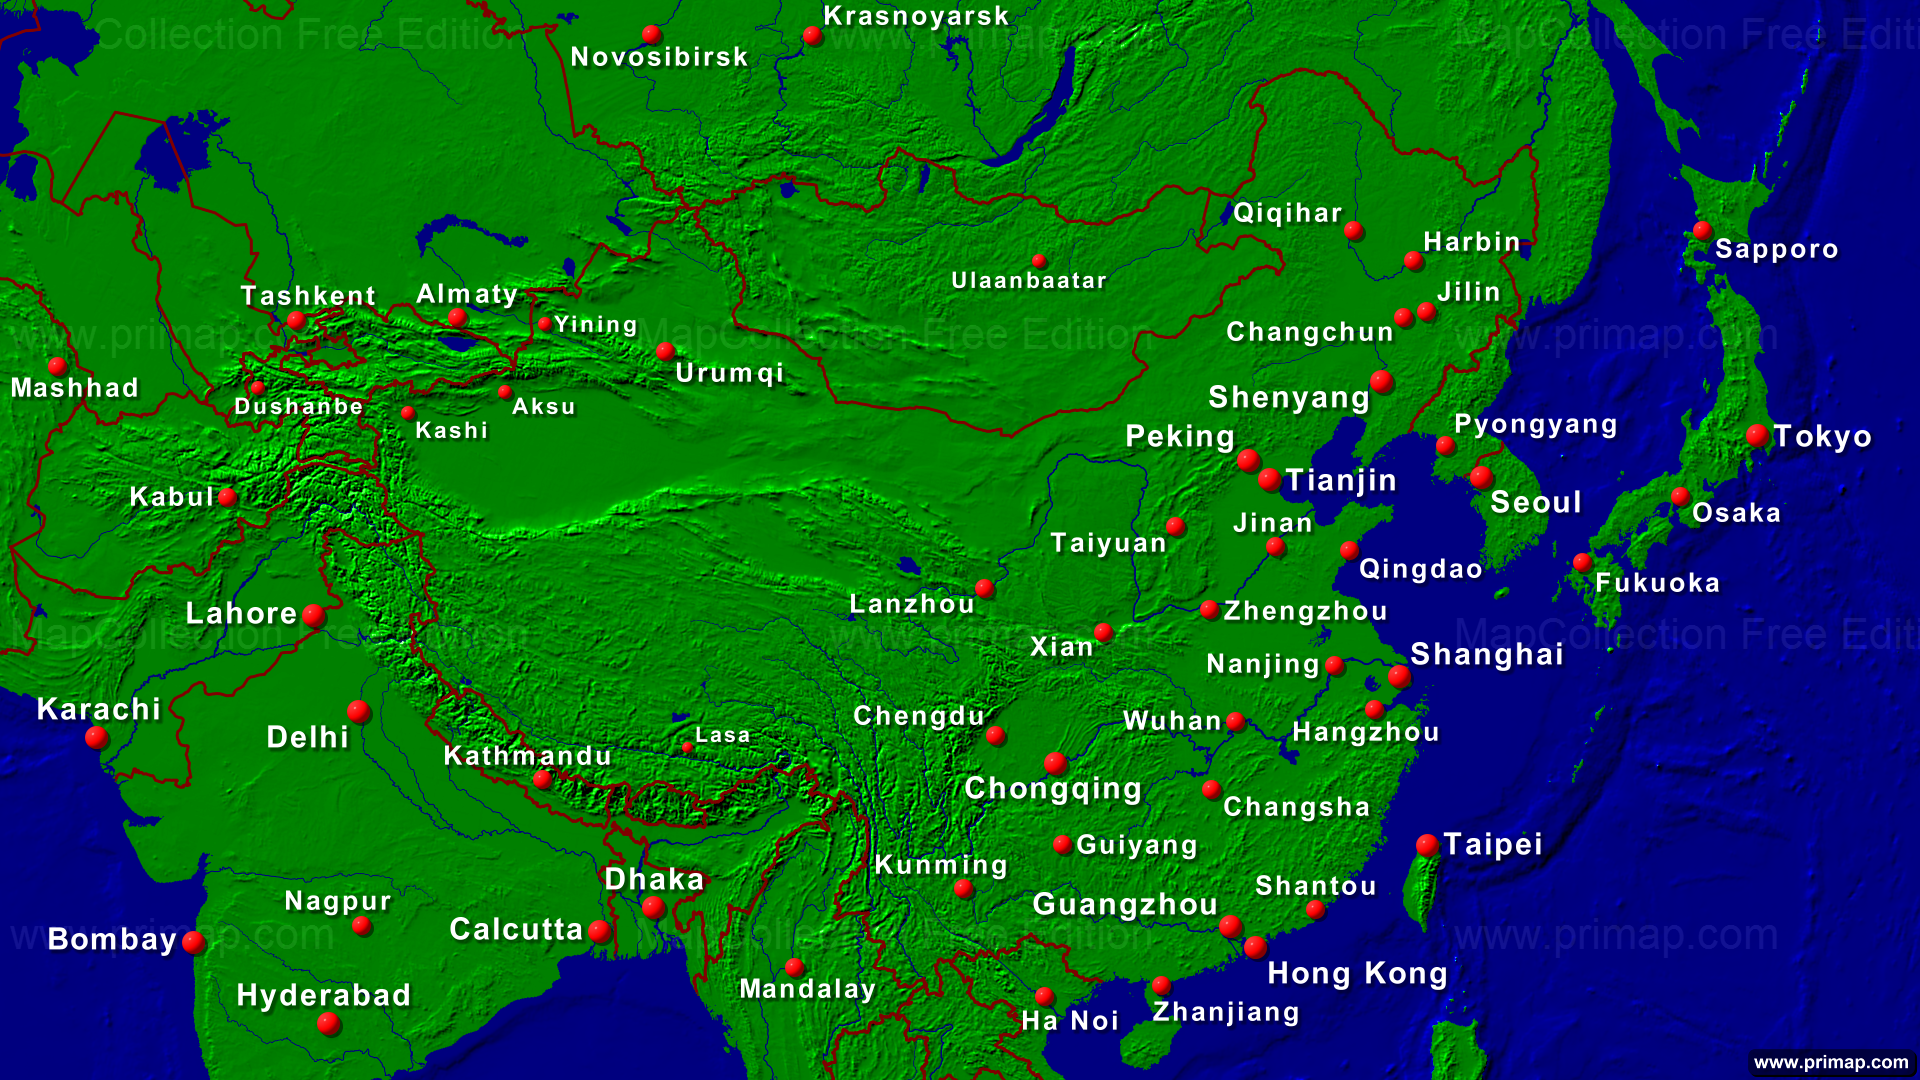 Show Map Of China.Primap National Maps